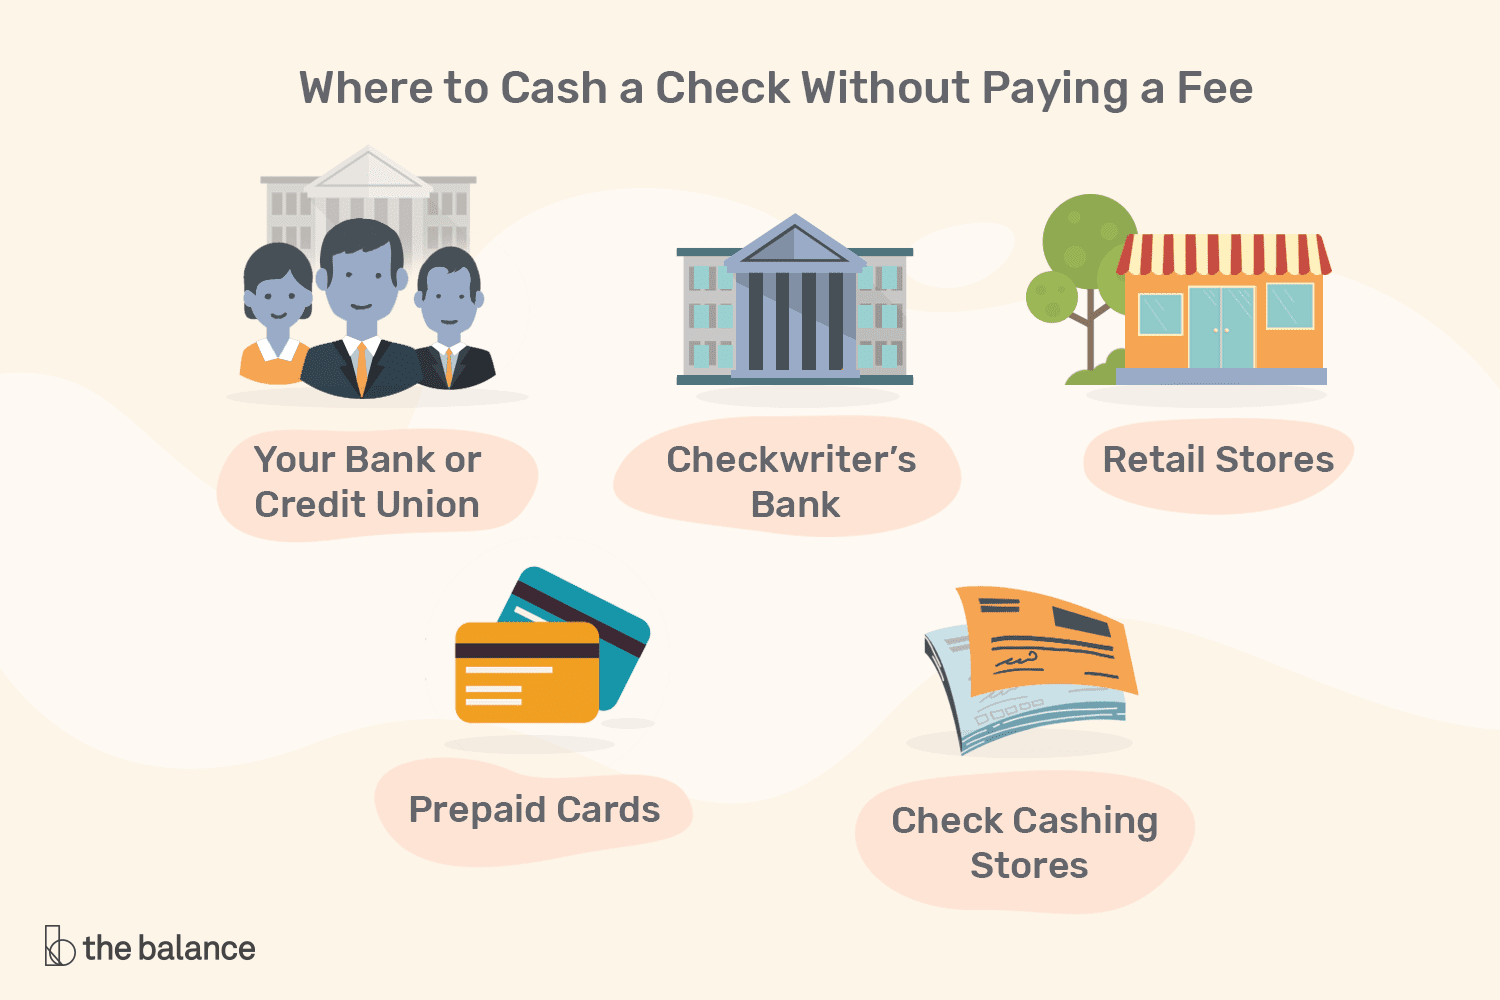 free check cashing 315472 final 5bbd18d046e0fb00266f6fcbpng - How To Put A Check On A Prepaid Card